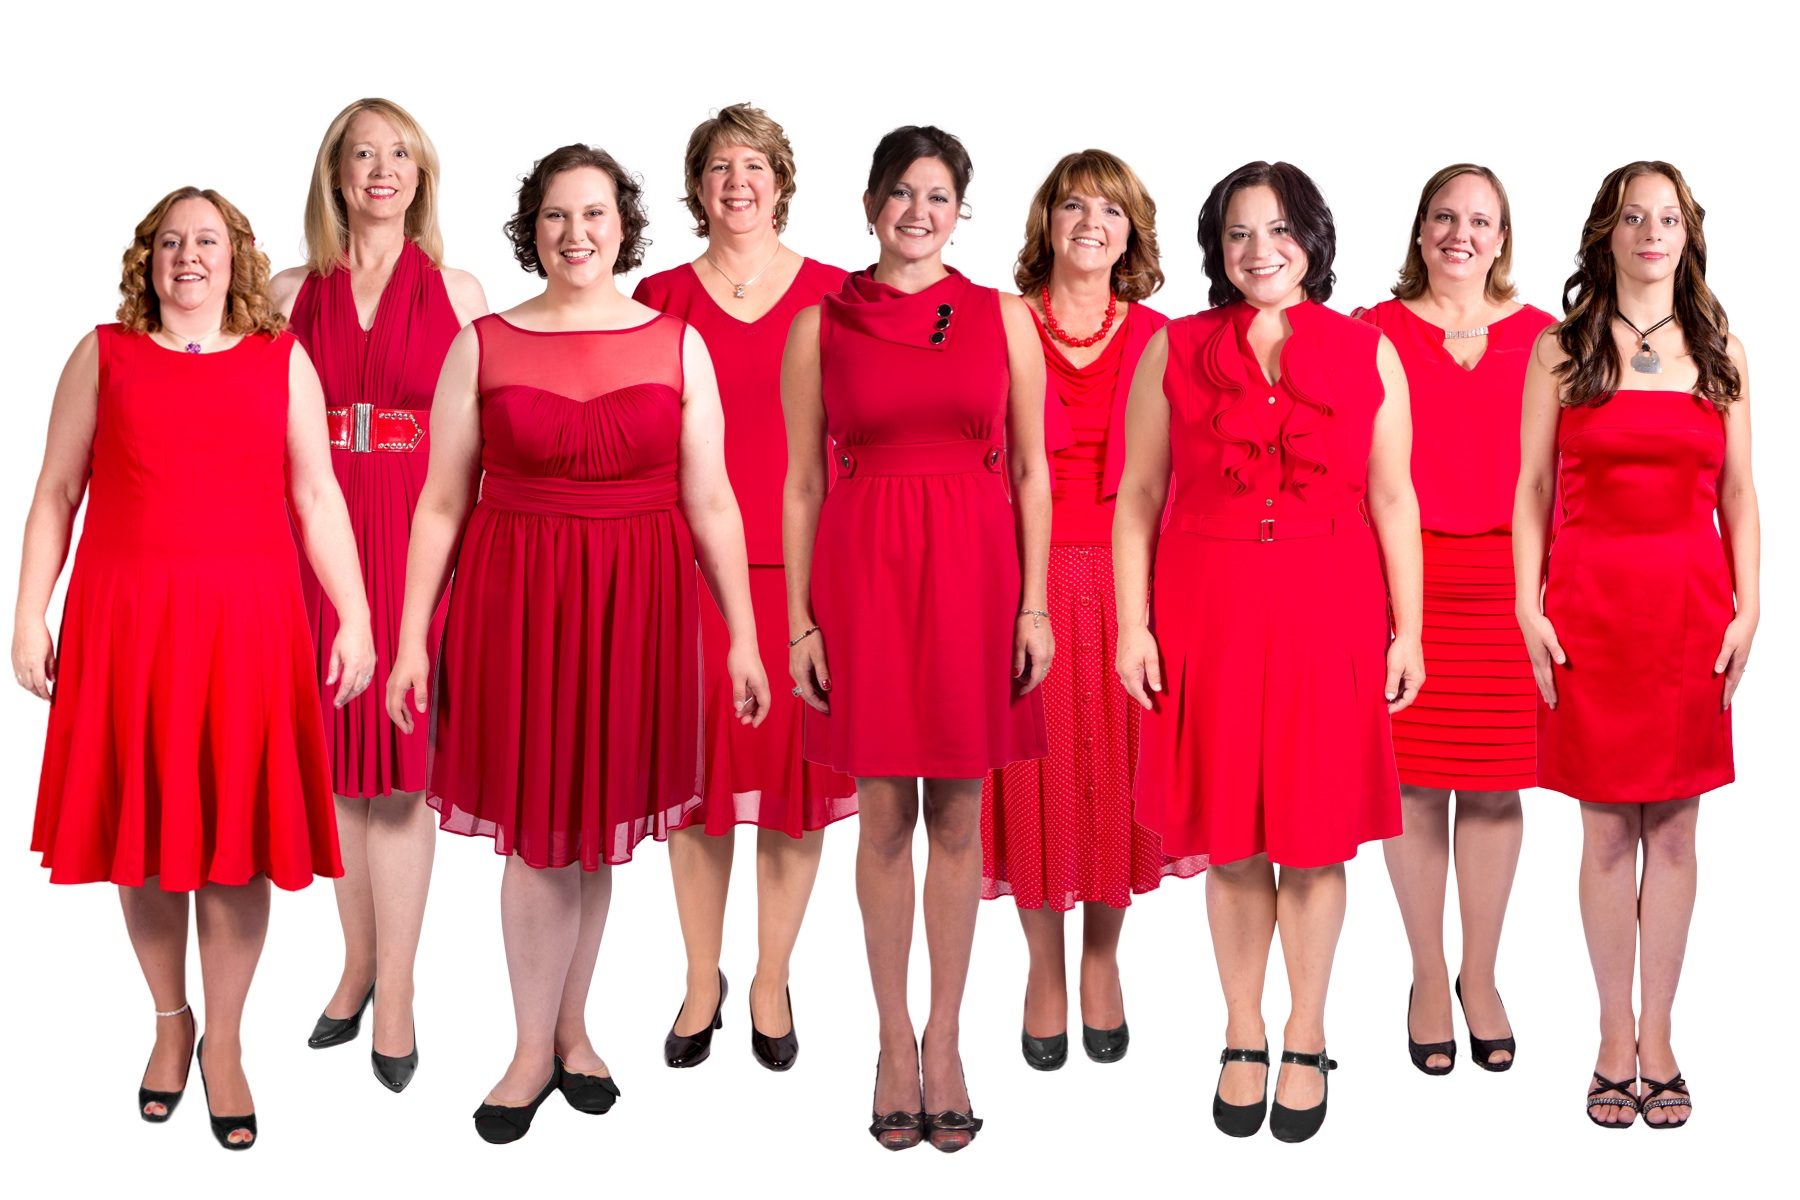 Goredforwomen group transparent bg 1